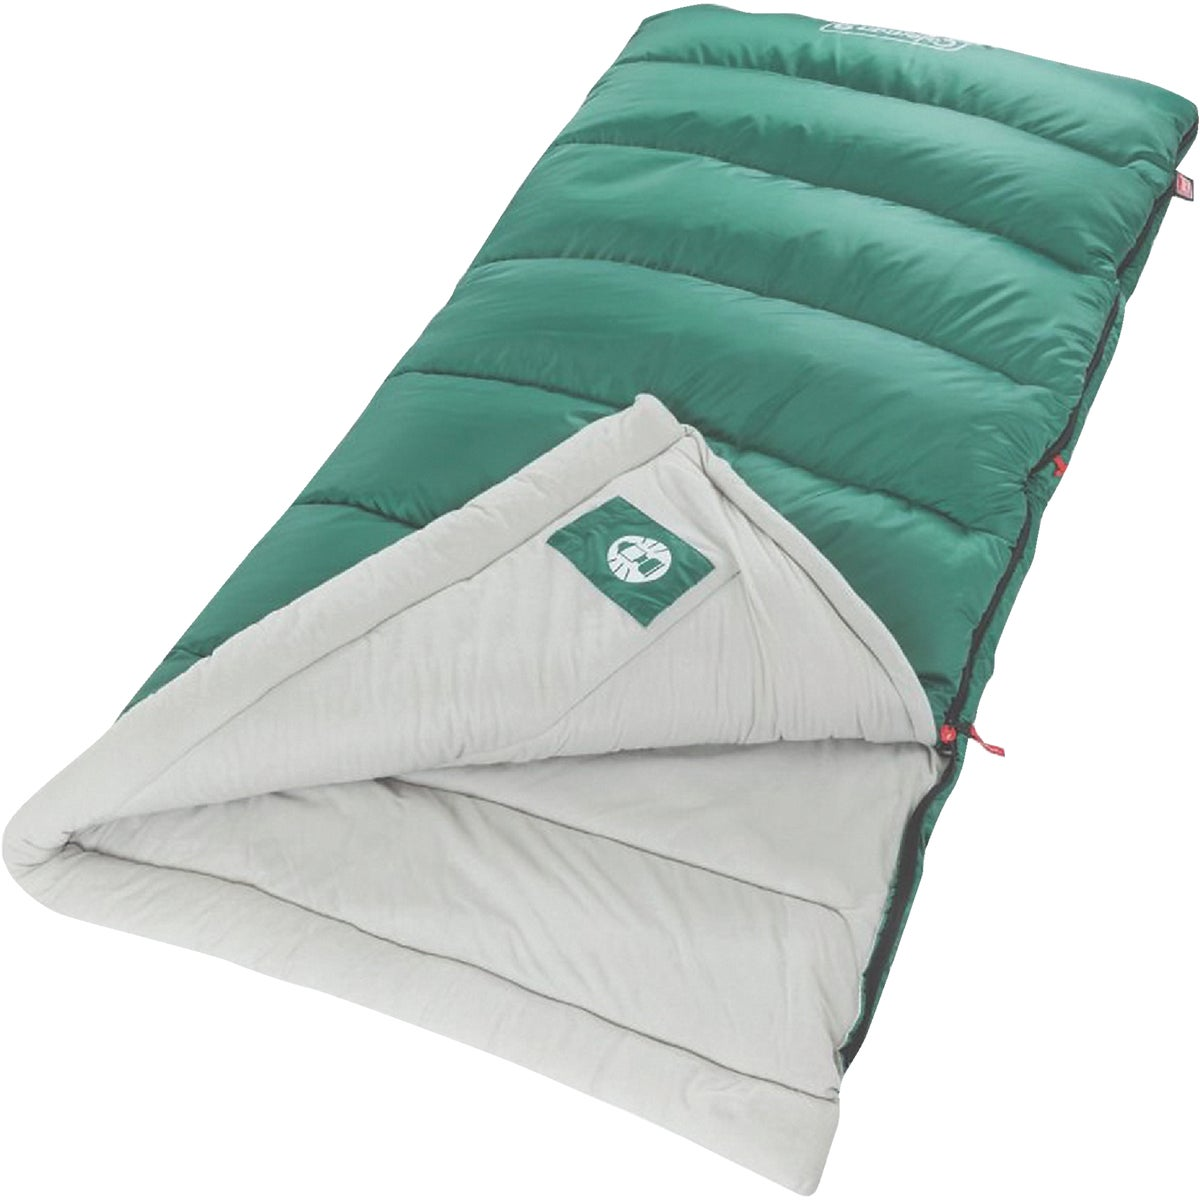 3LB SLEEPING BAG